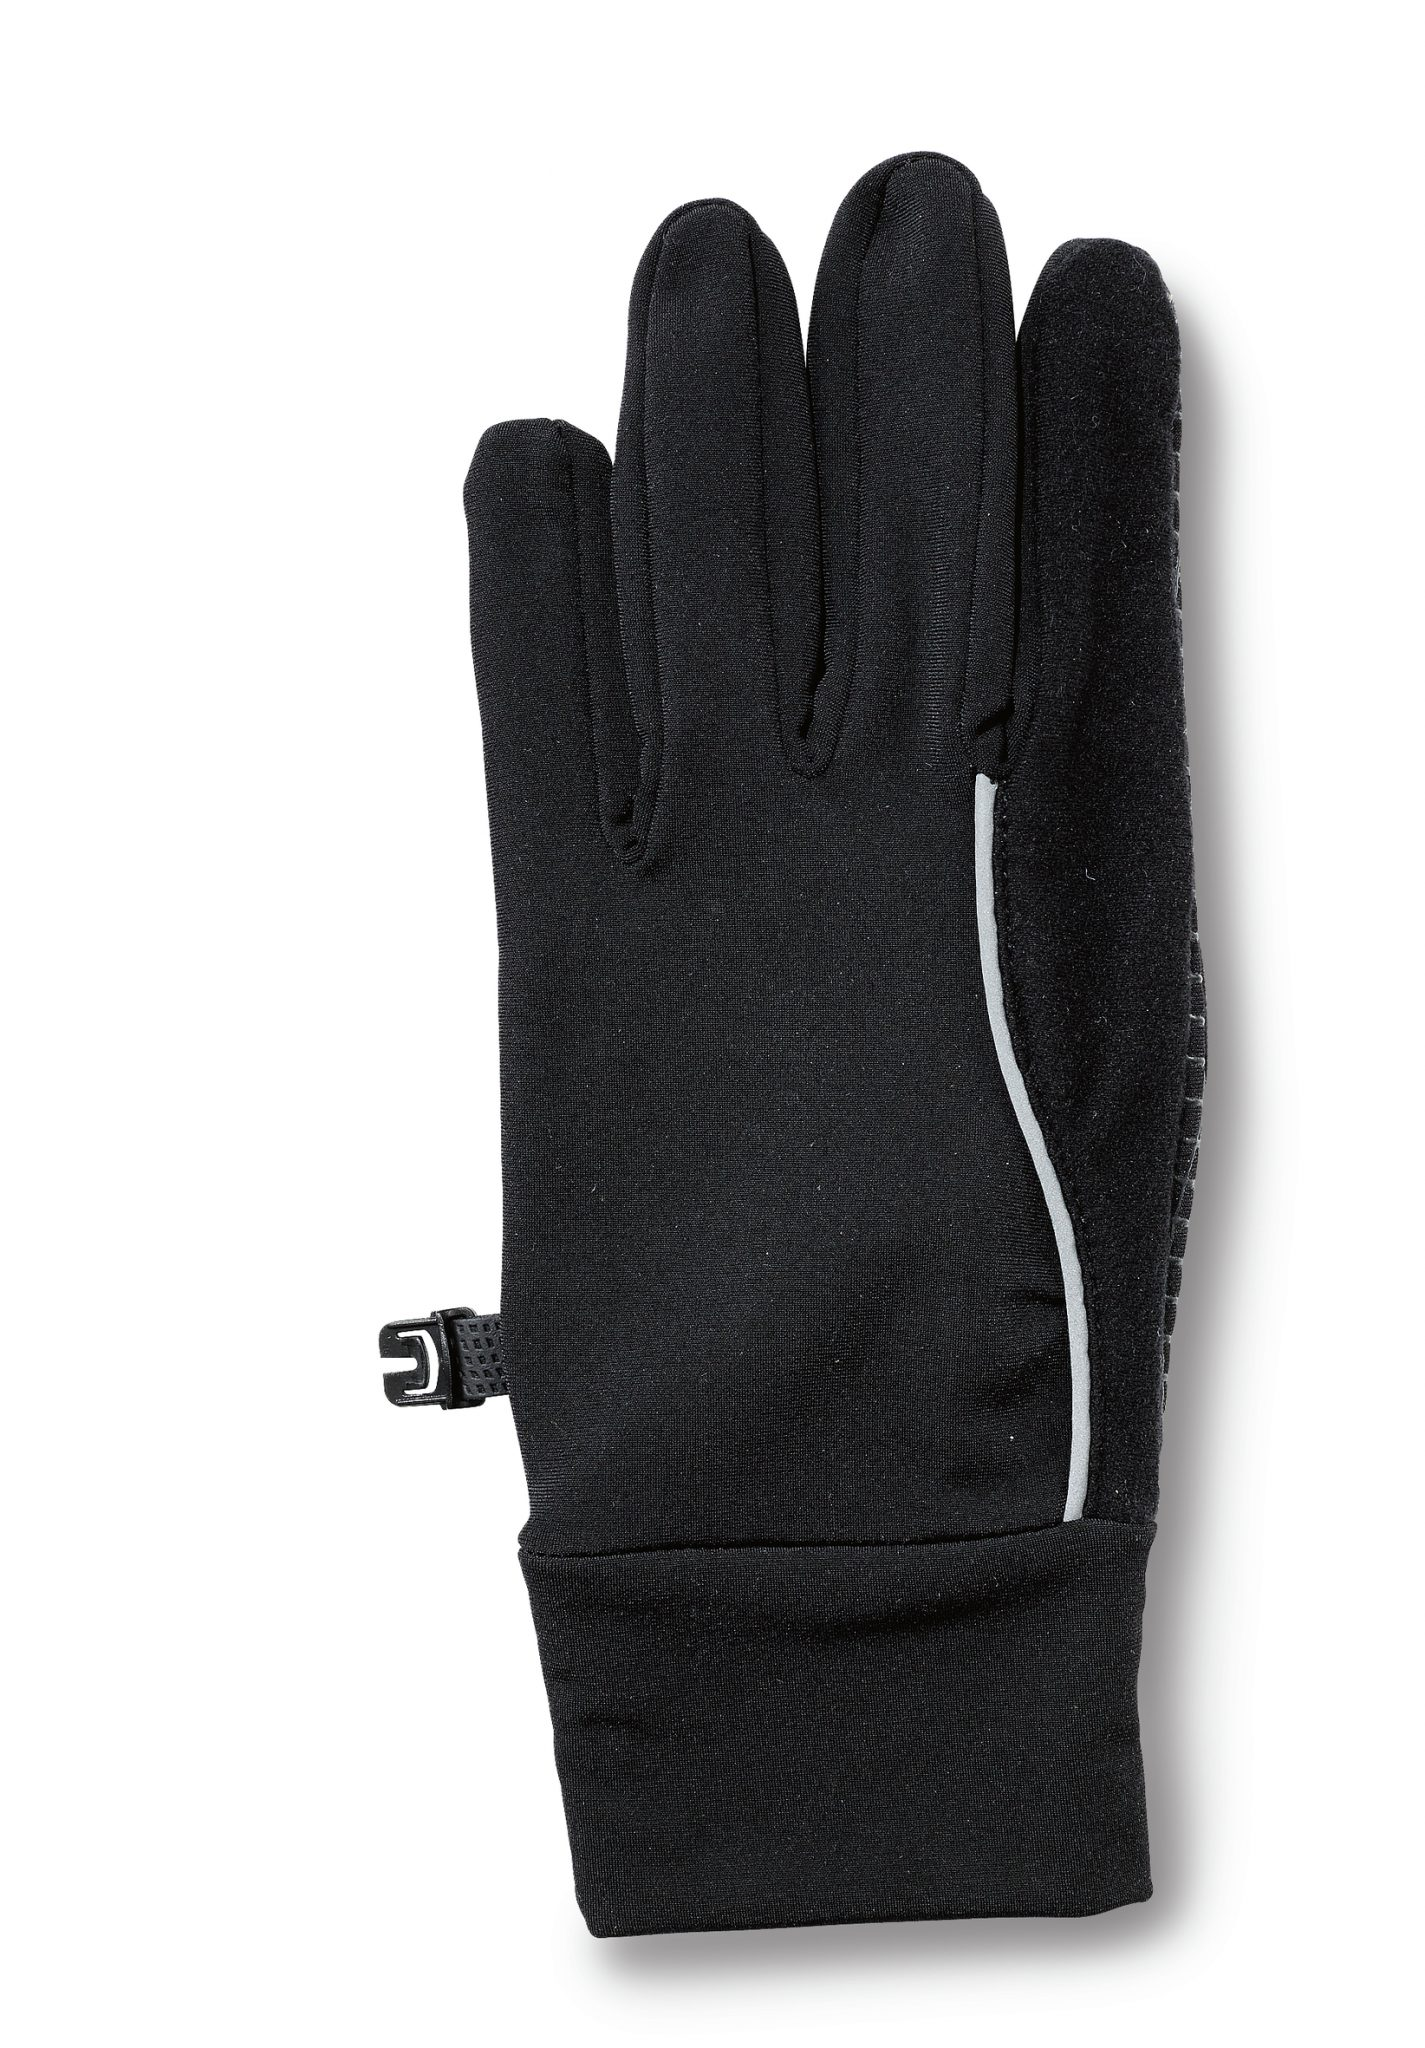 Lobster Cycling Gloves Sealskinz Waterproof Highland XP Claw winter black